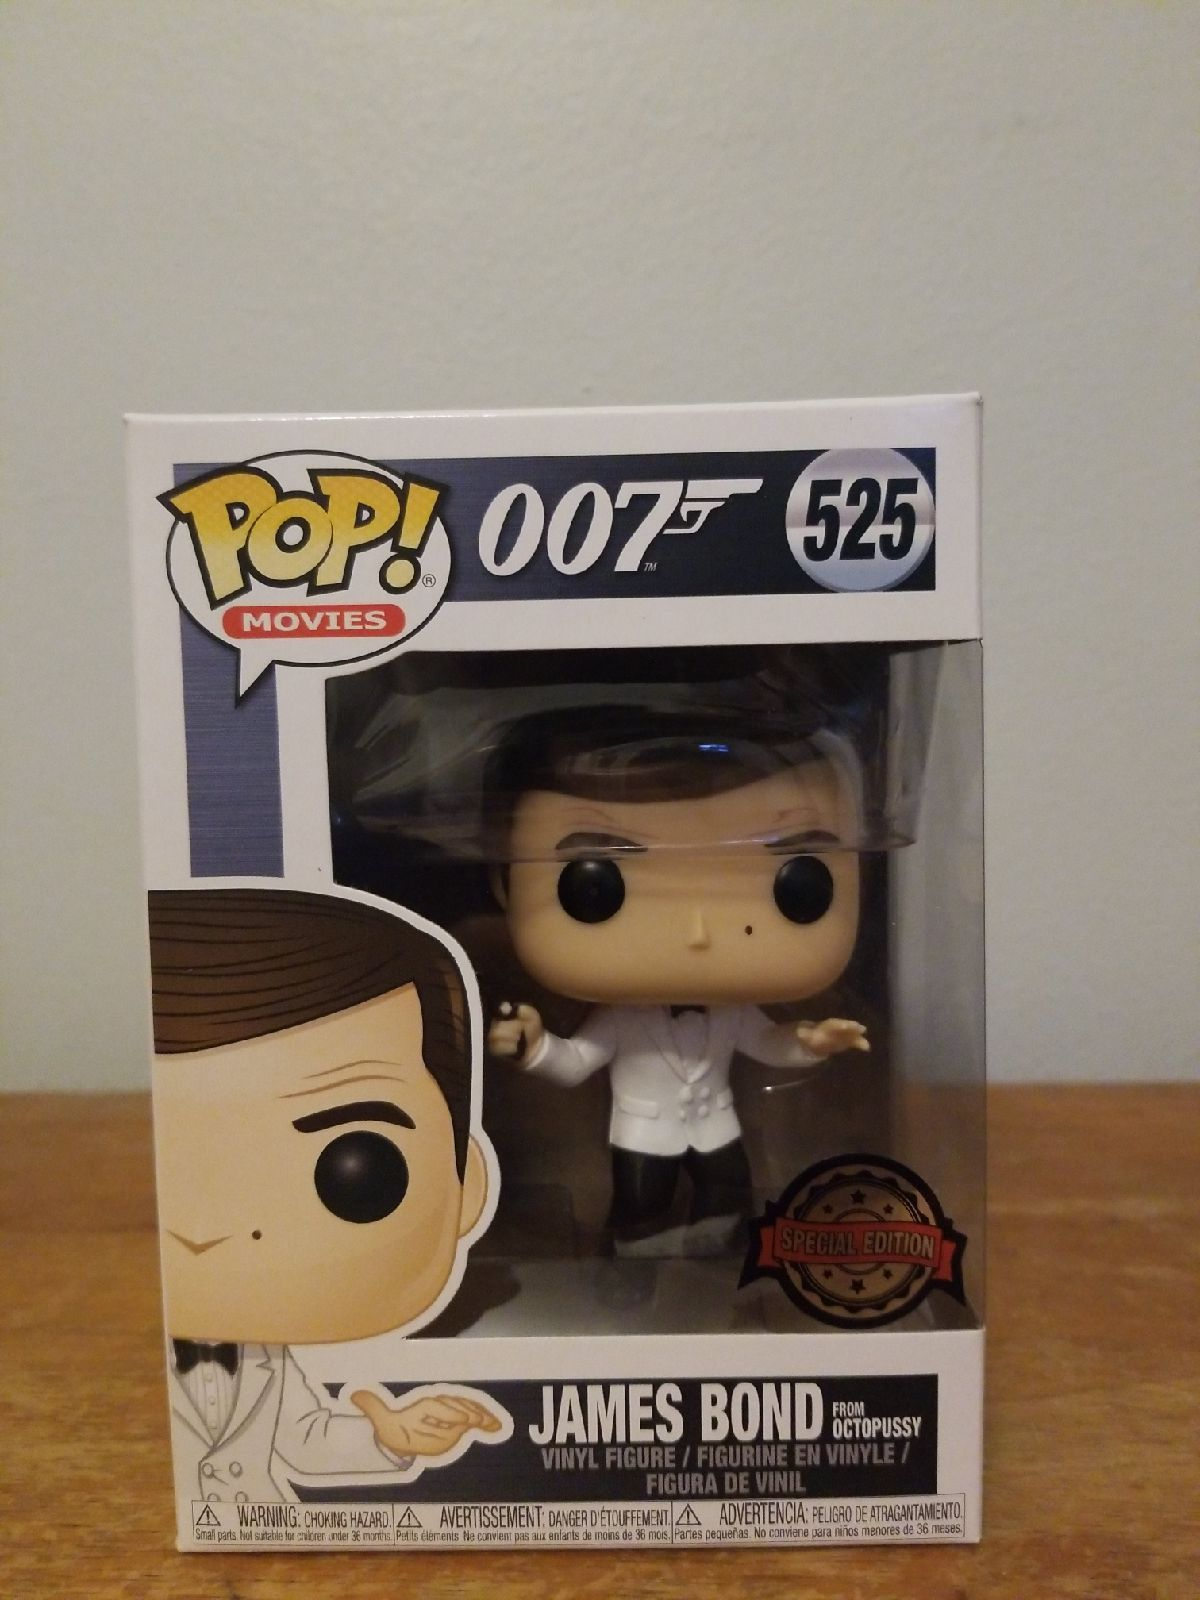 James Bond from Octopussy Funko Pop #525